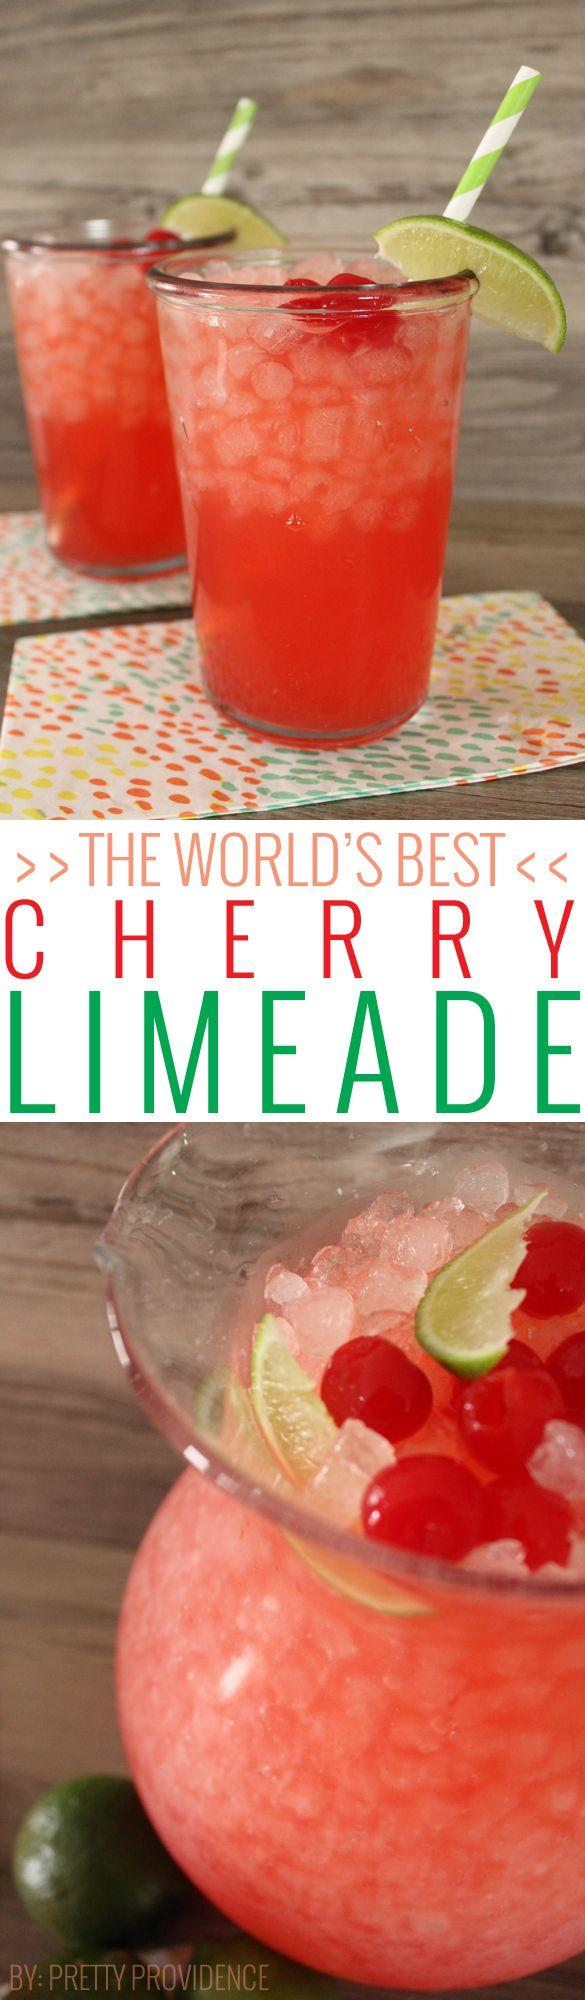 Hochzeit - The World's Best Cherry Limeade